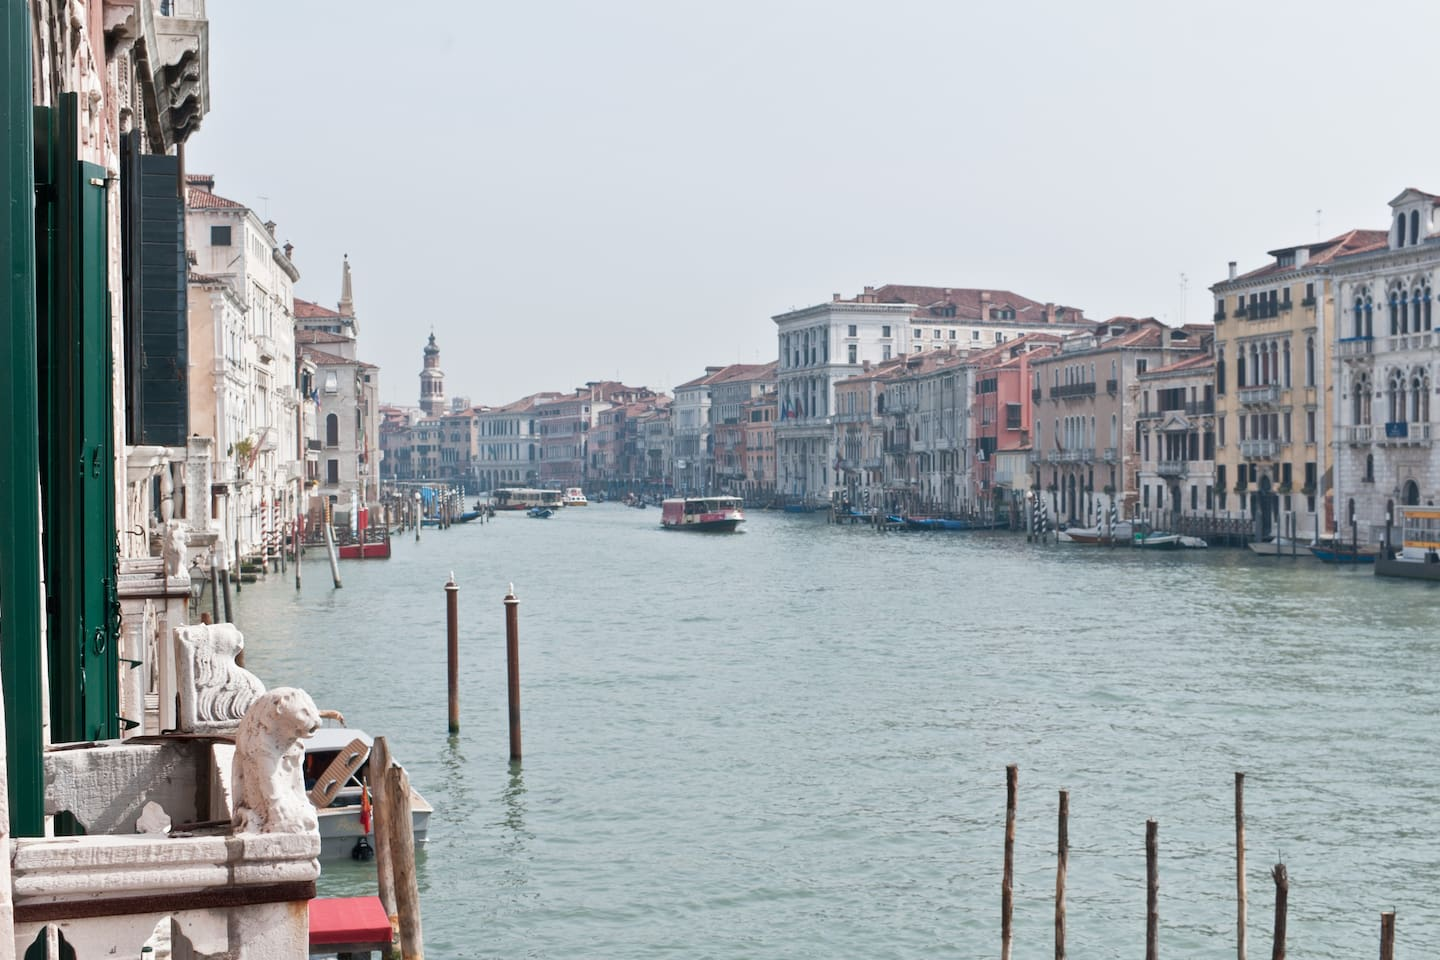 Balcony view of the Grand Canal.